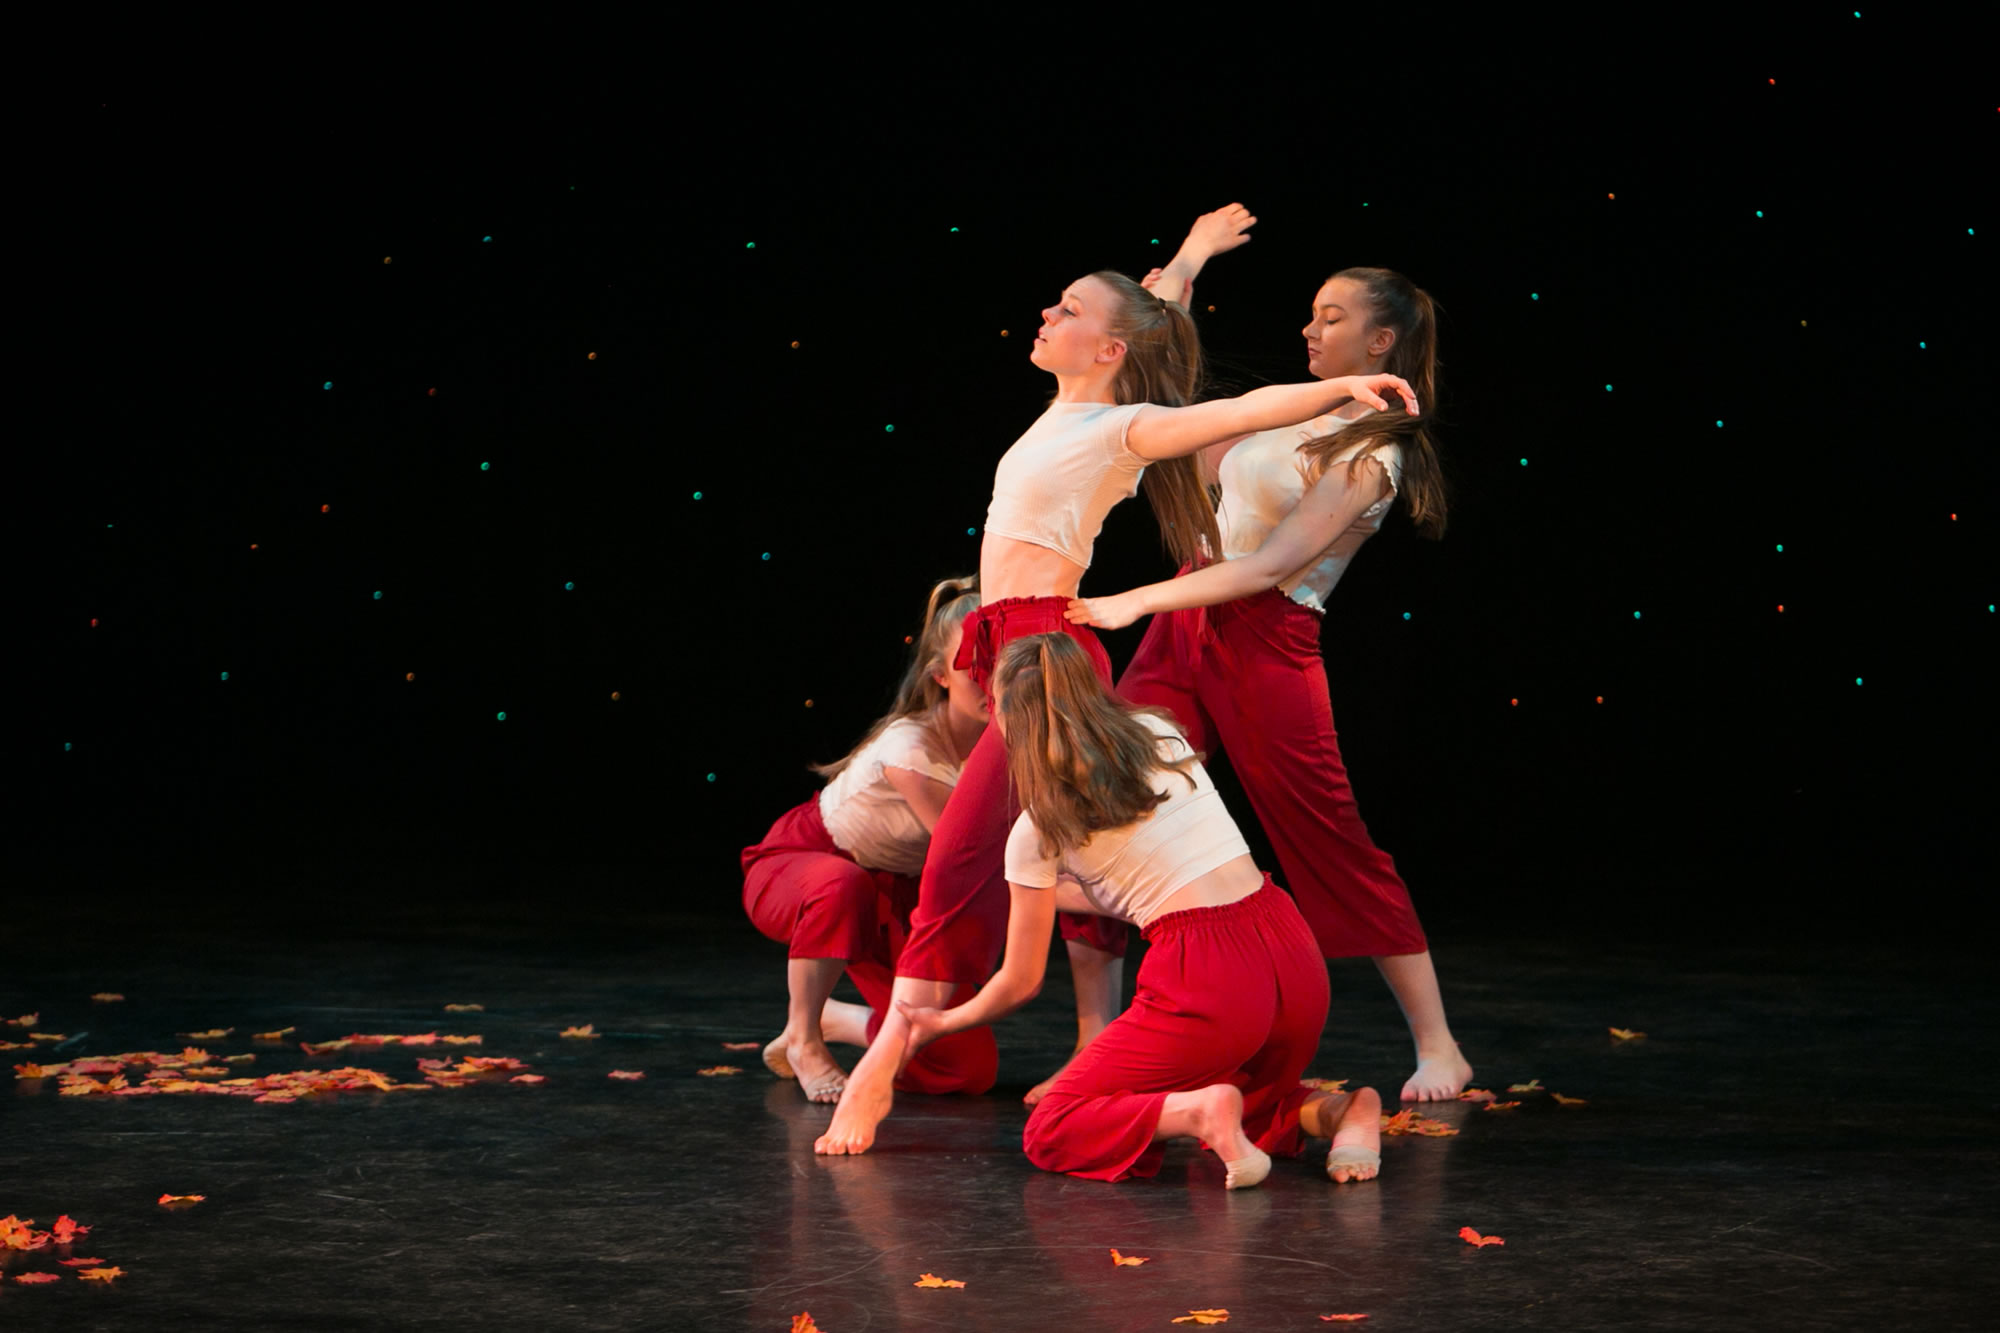 Hitchin_School_of_Dance_Show_2019-SM1_2534.jpg